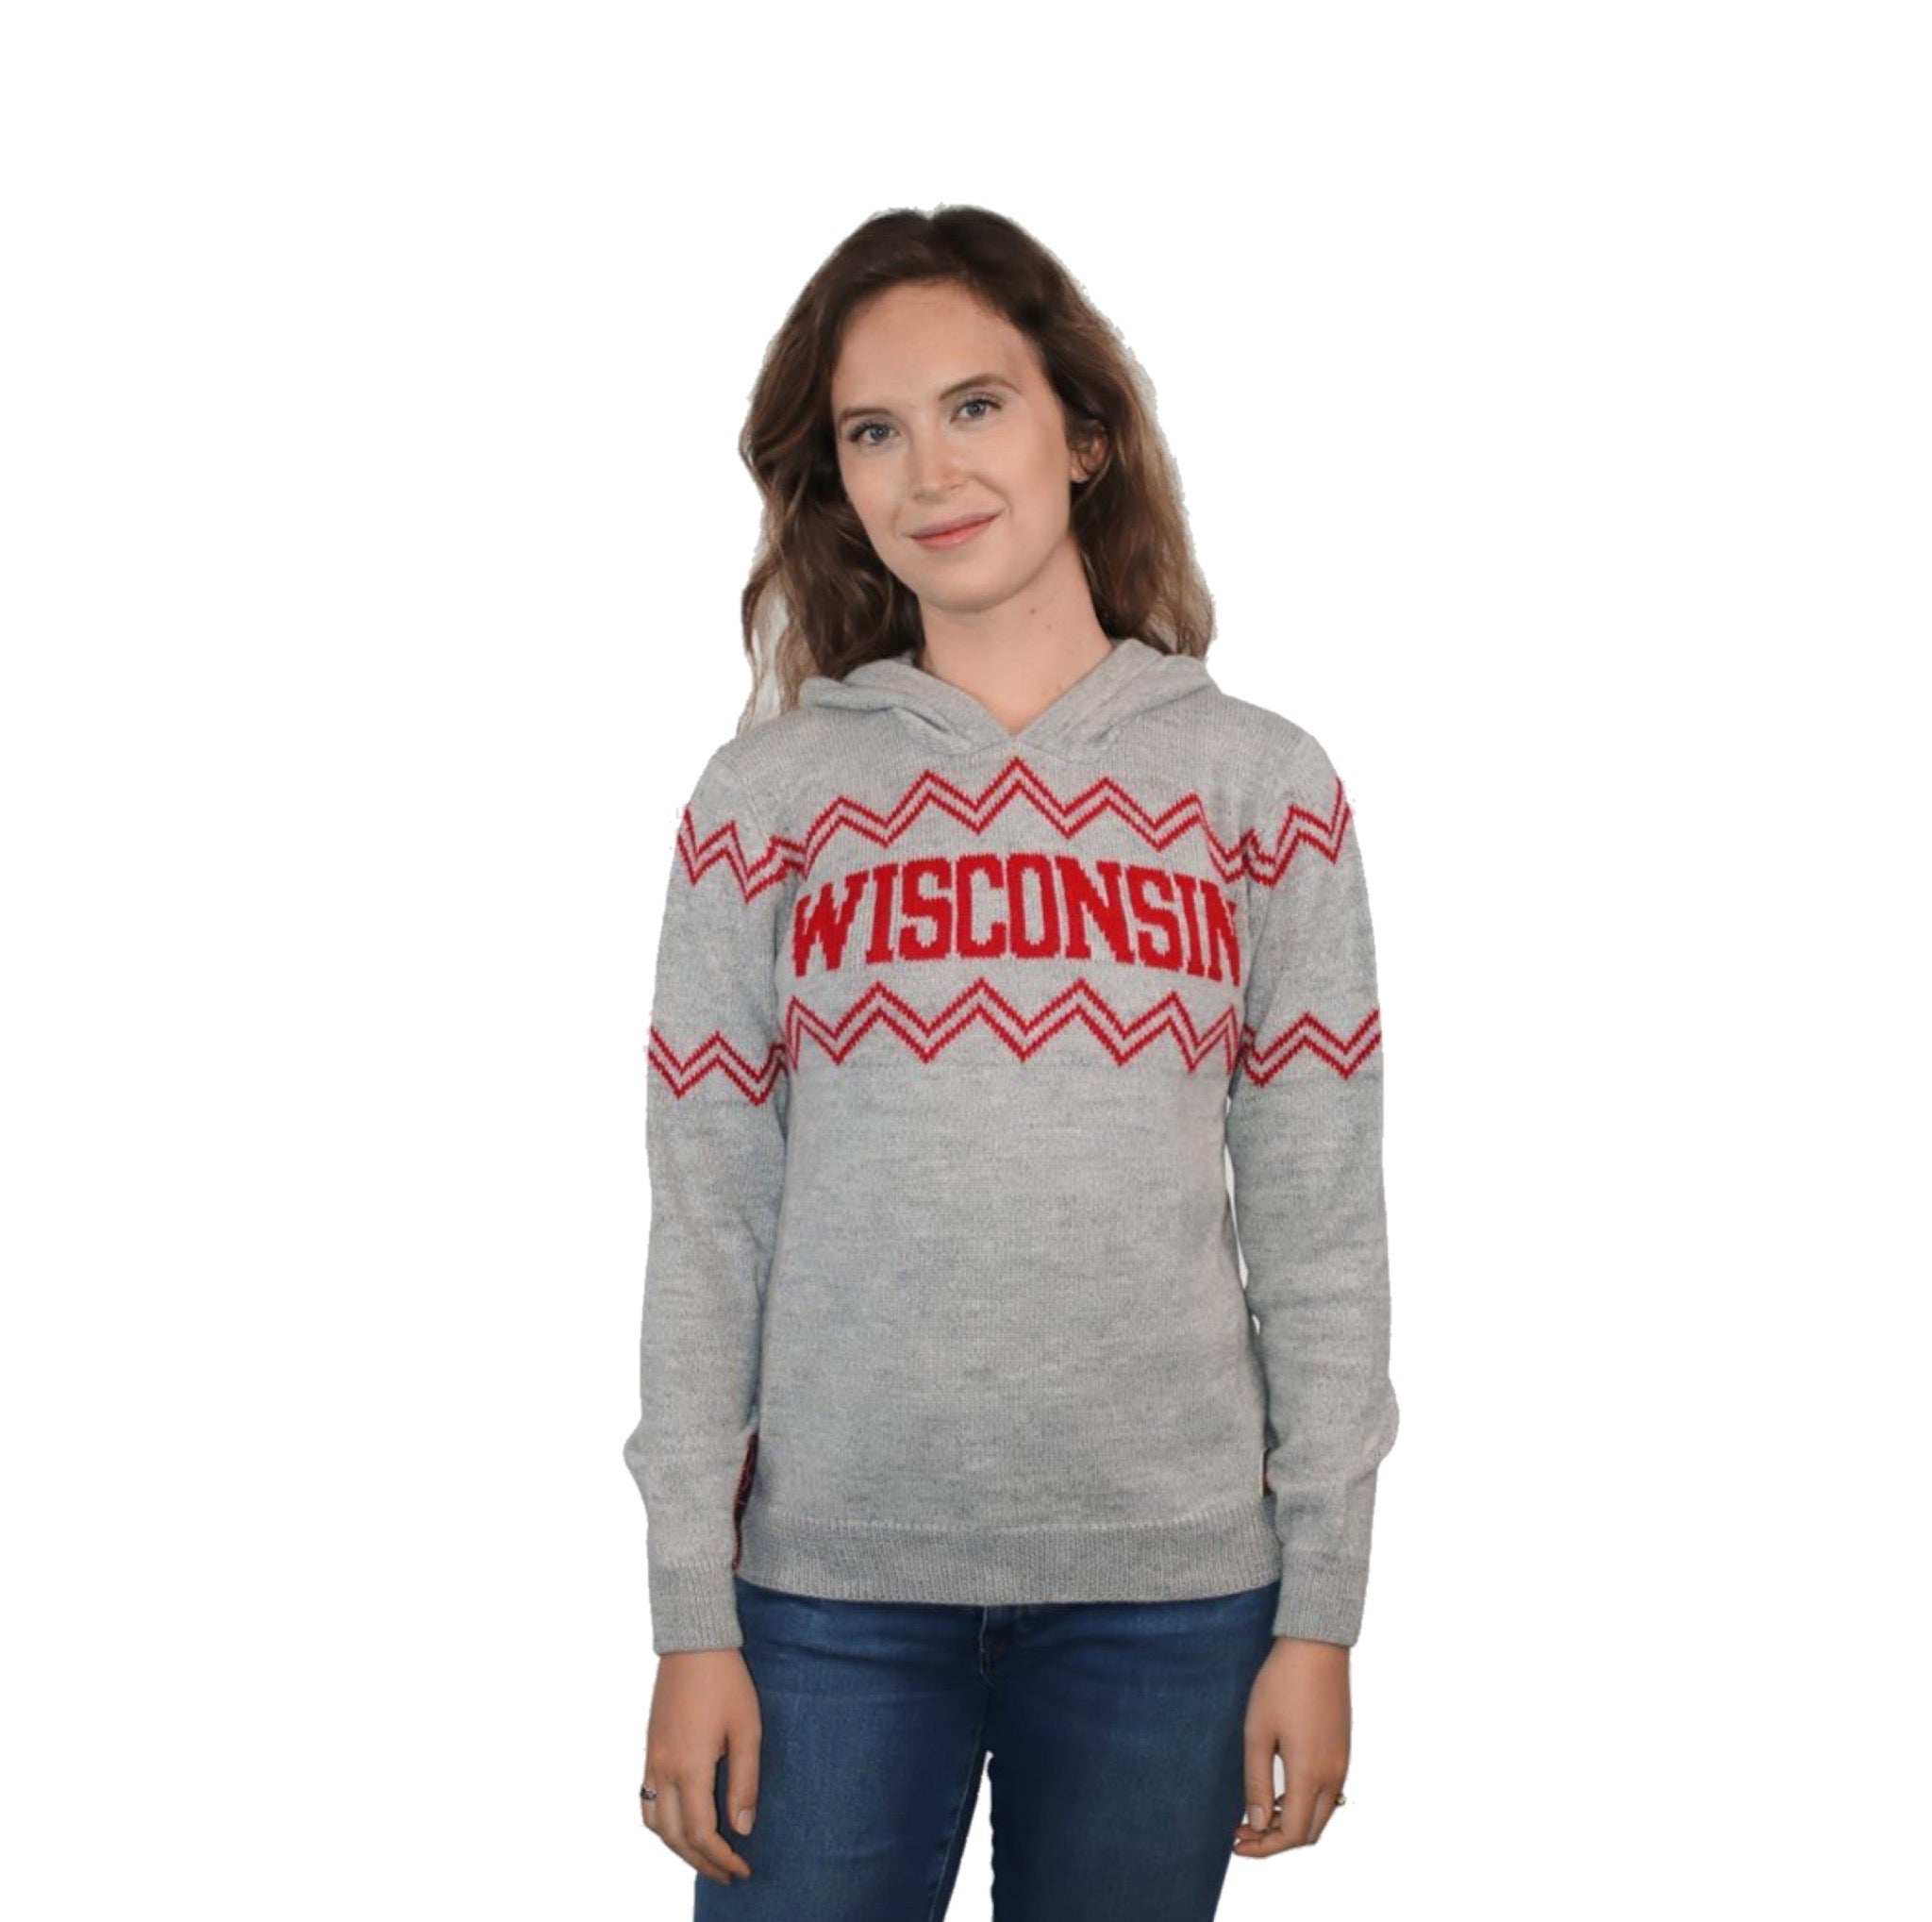 Wisconsin Alpaca Hoodie - Light Gray